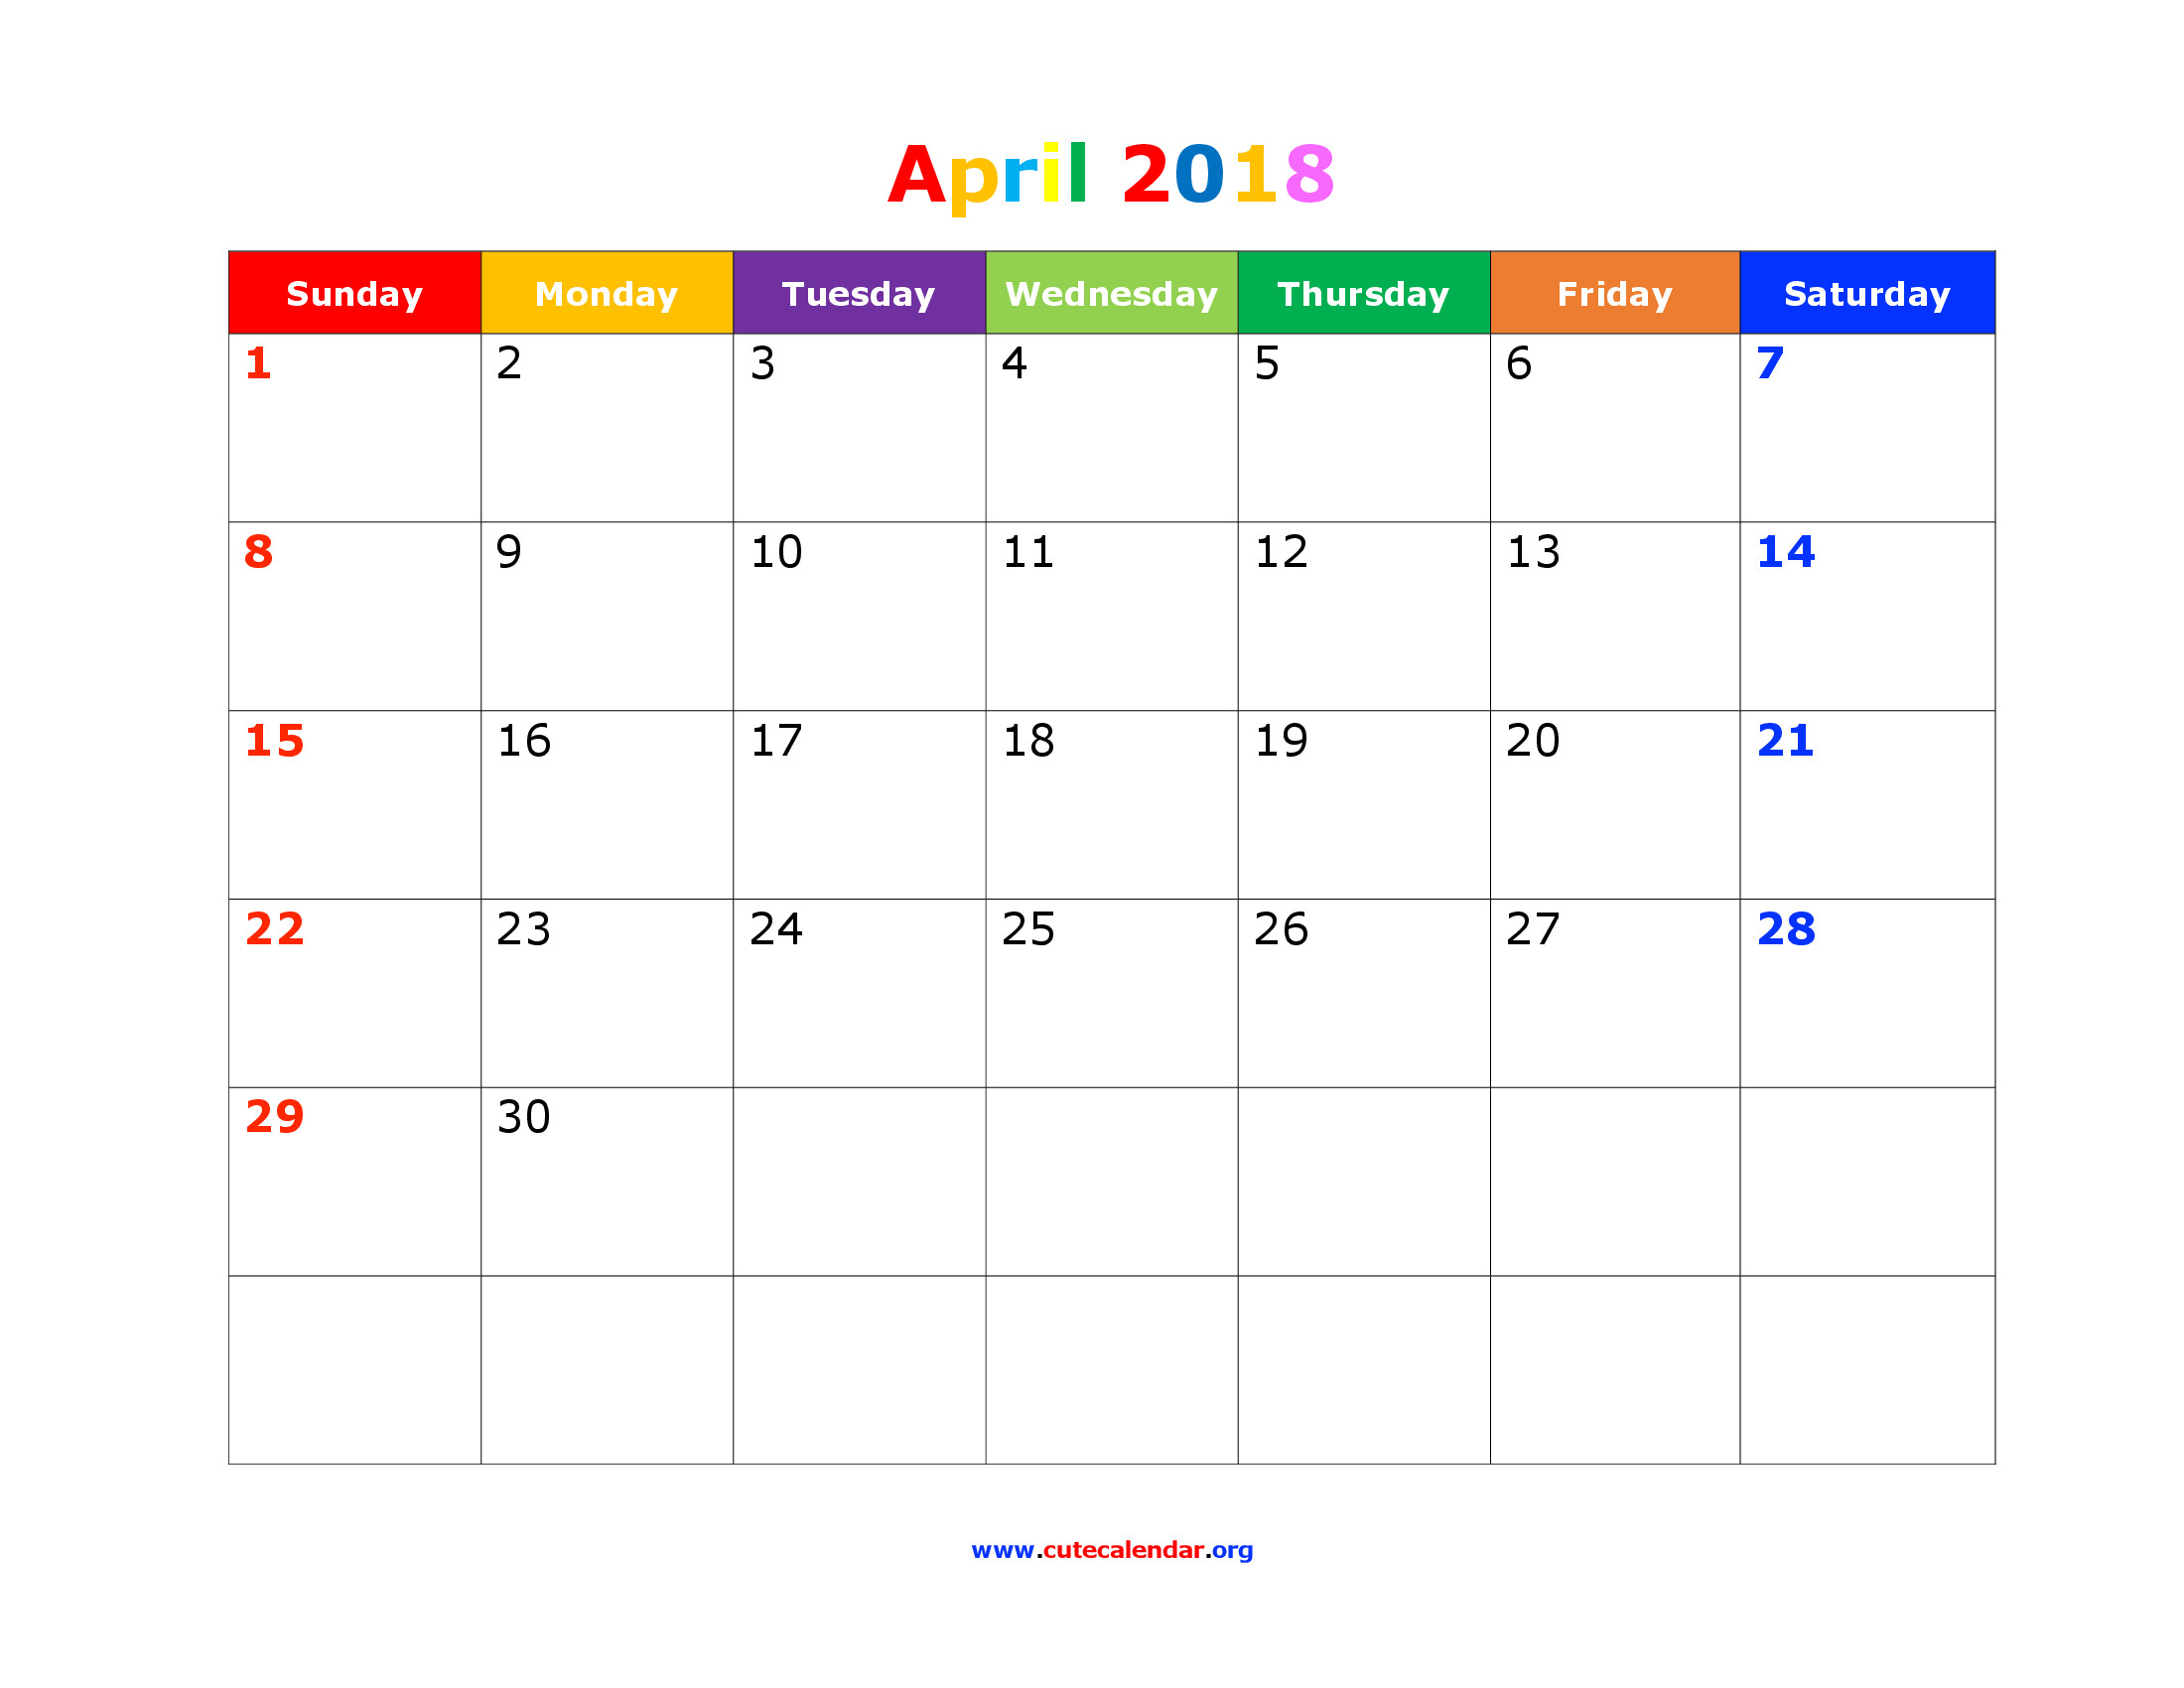 Desktop Calendar Wallpaper 2018 : Desktop wallpapers calendar april ·①